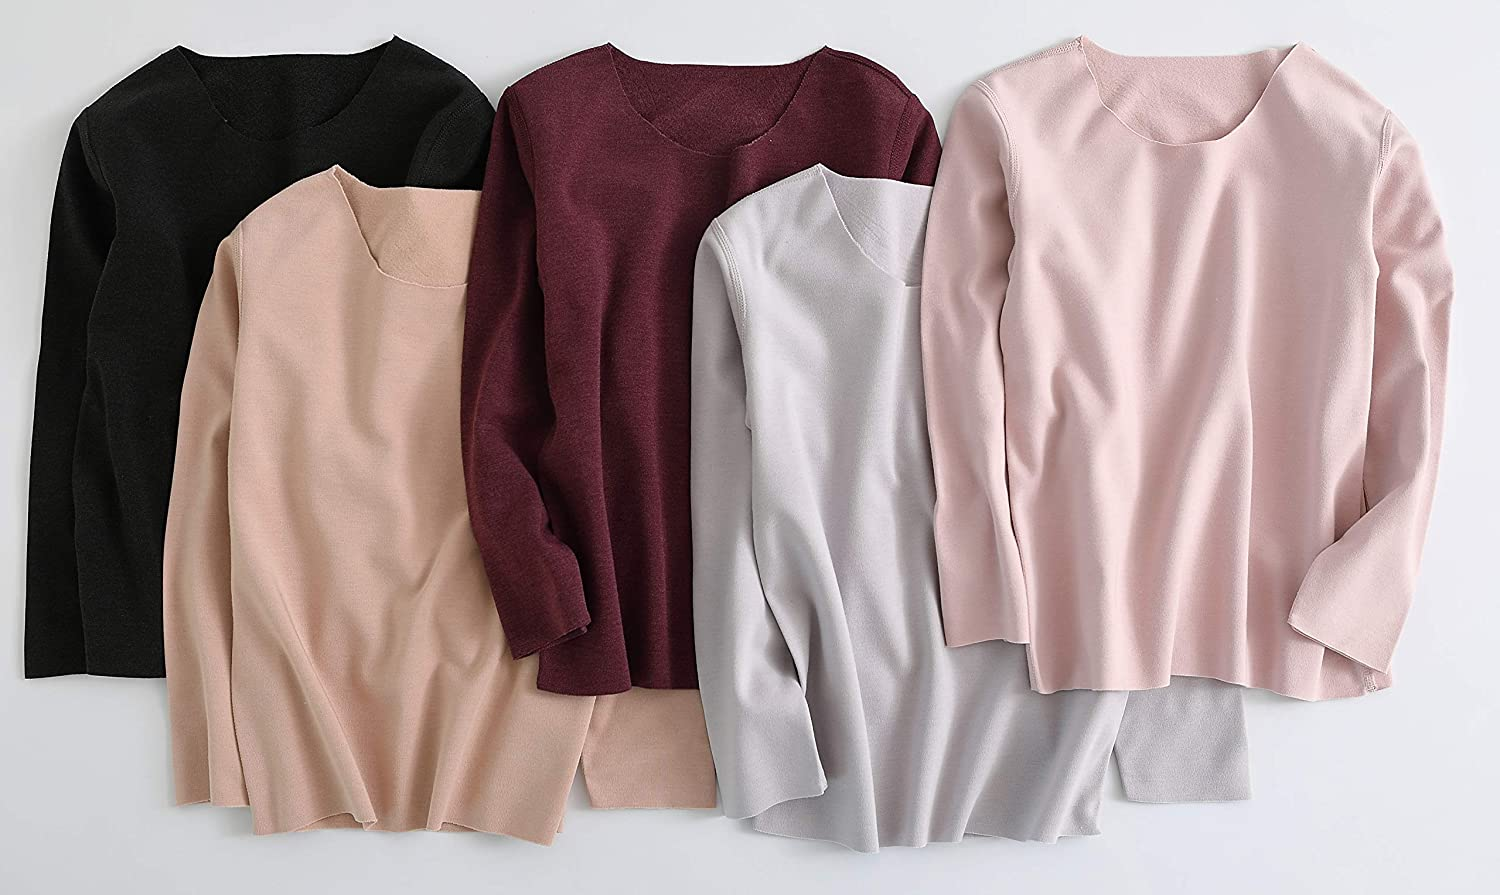 ABClothing Women /& Kids Laser Cut Thermal Underwear Set Warm /& Lightweight Invisible Fleece Lined Long Set Macaron Color